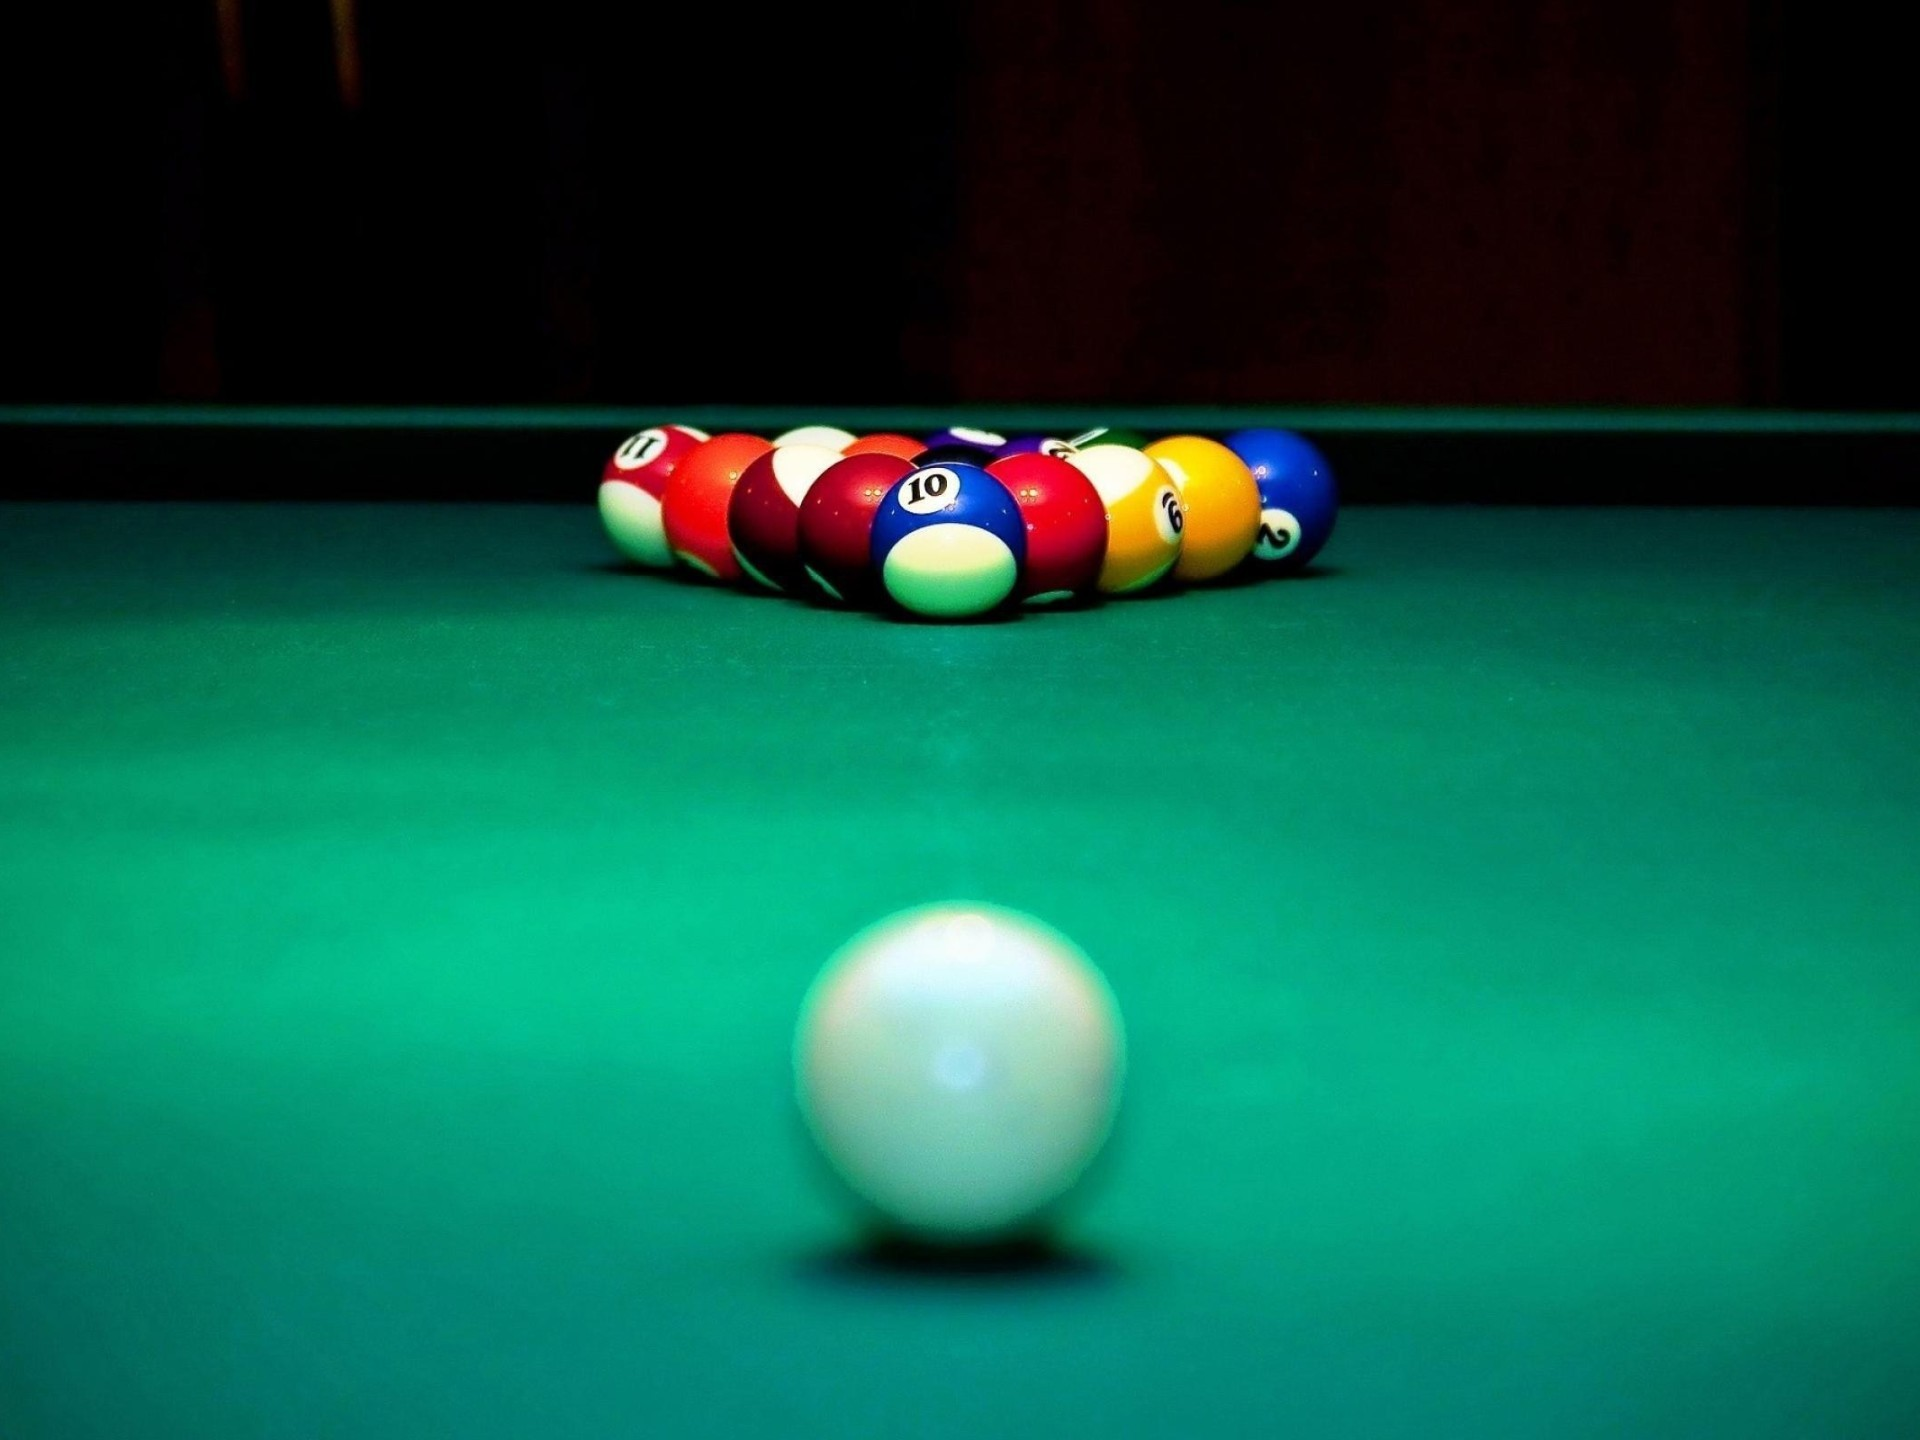 1920x1440 Billiards Table and Balls Wallpaper